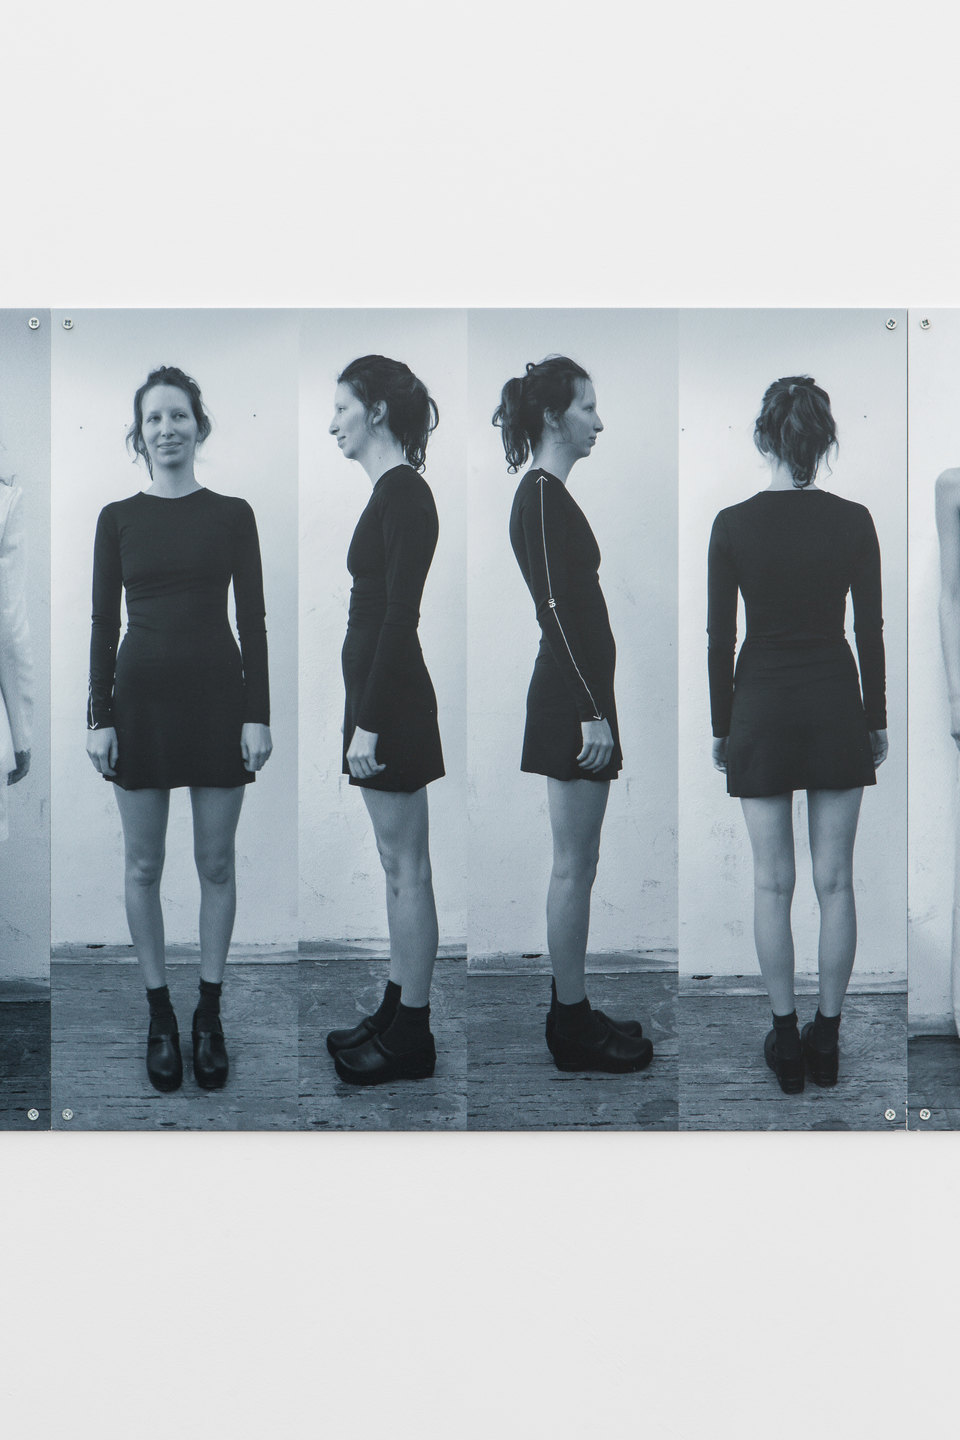 Anna-Sophie Berger, Fashion is Fast (Fitting 2013) 5, 2019, Cell Project Space